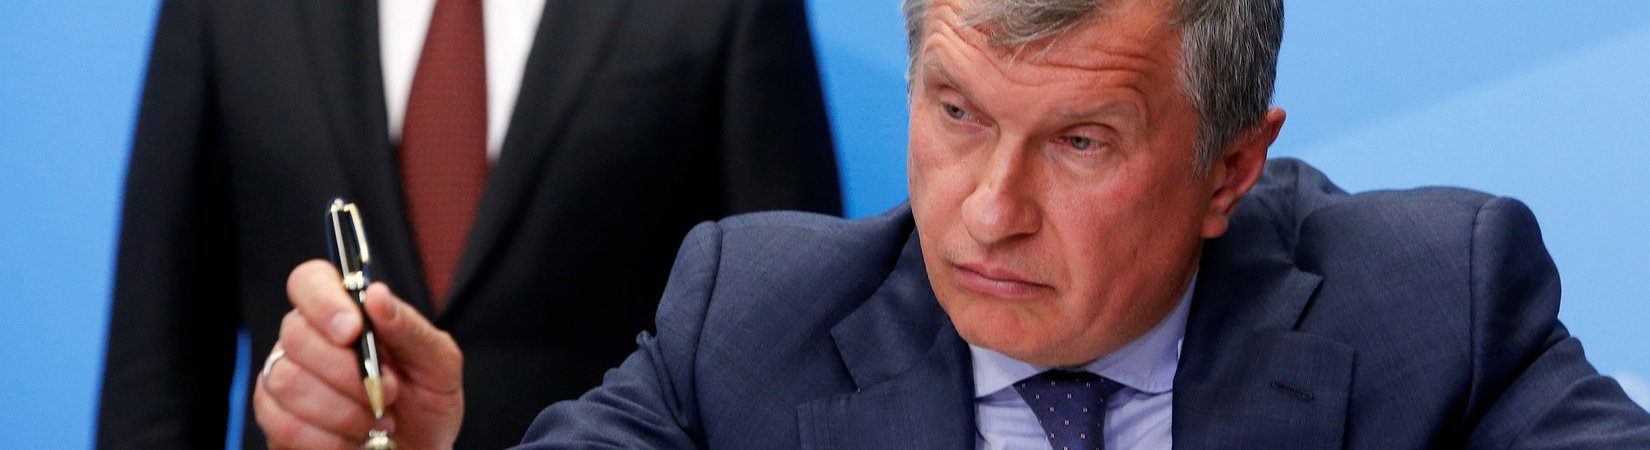 Rusia va a privatizar Rosneft, la mayor petrolera del país